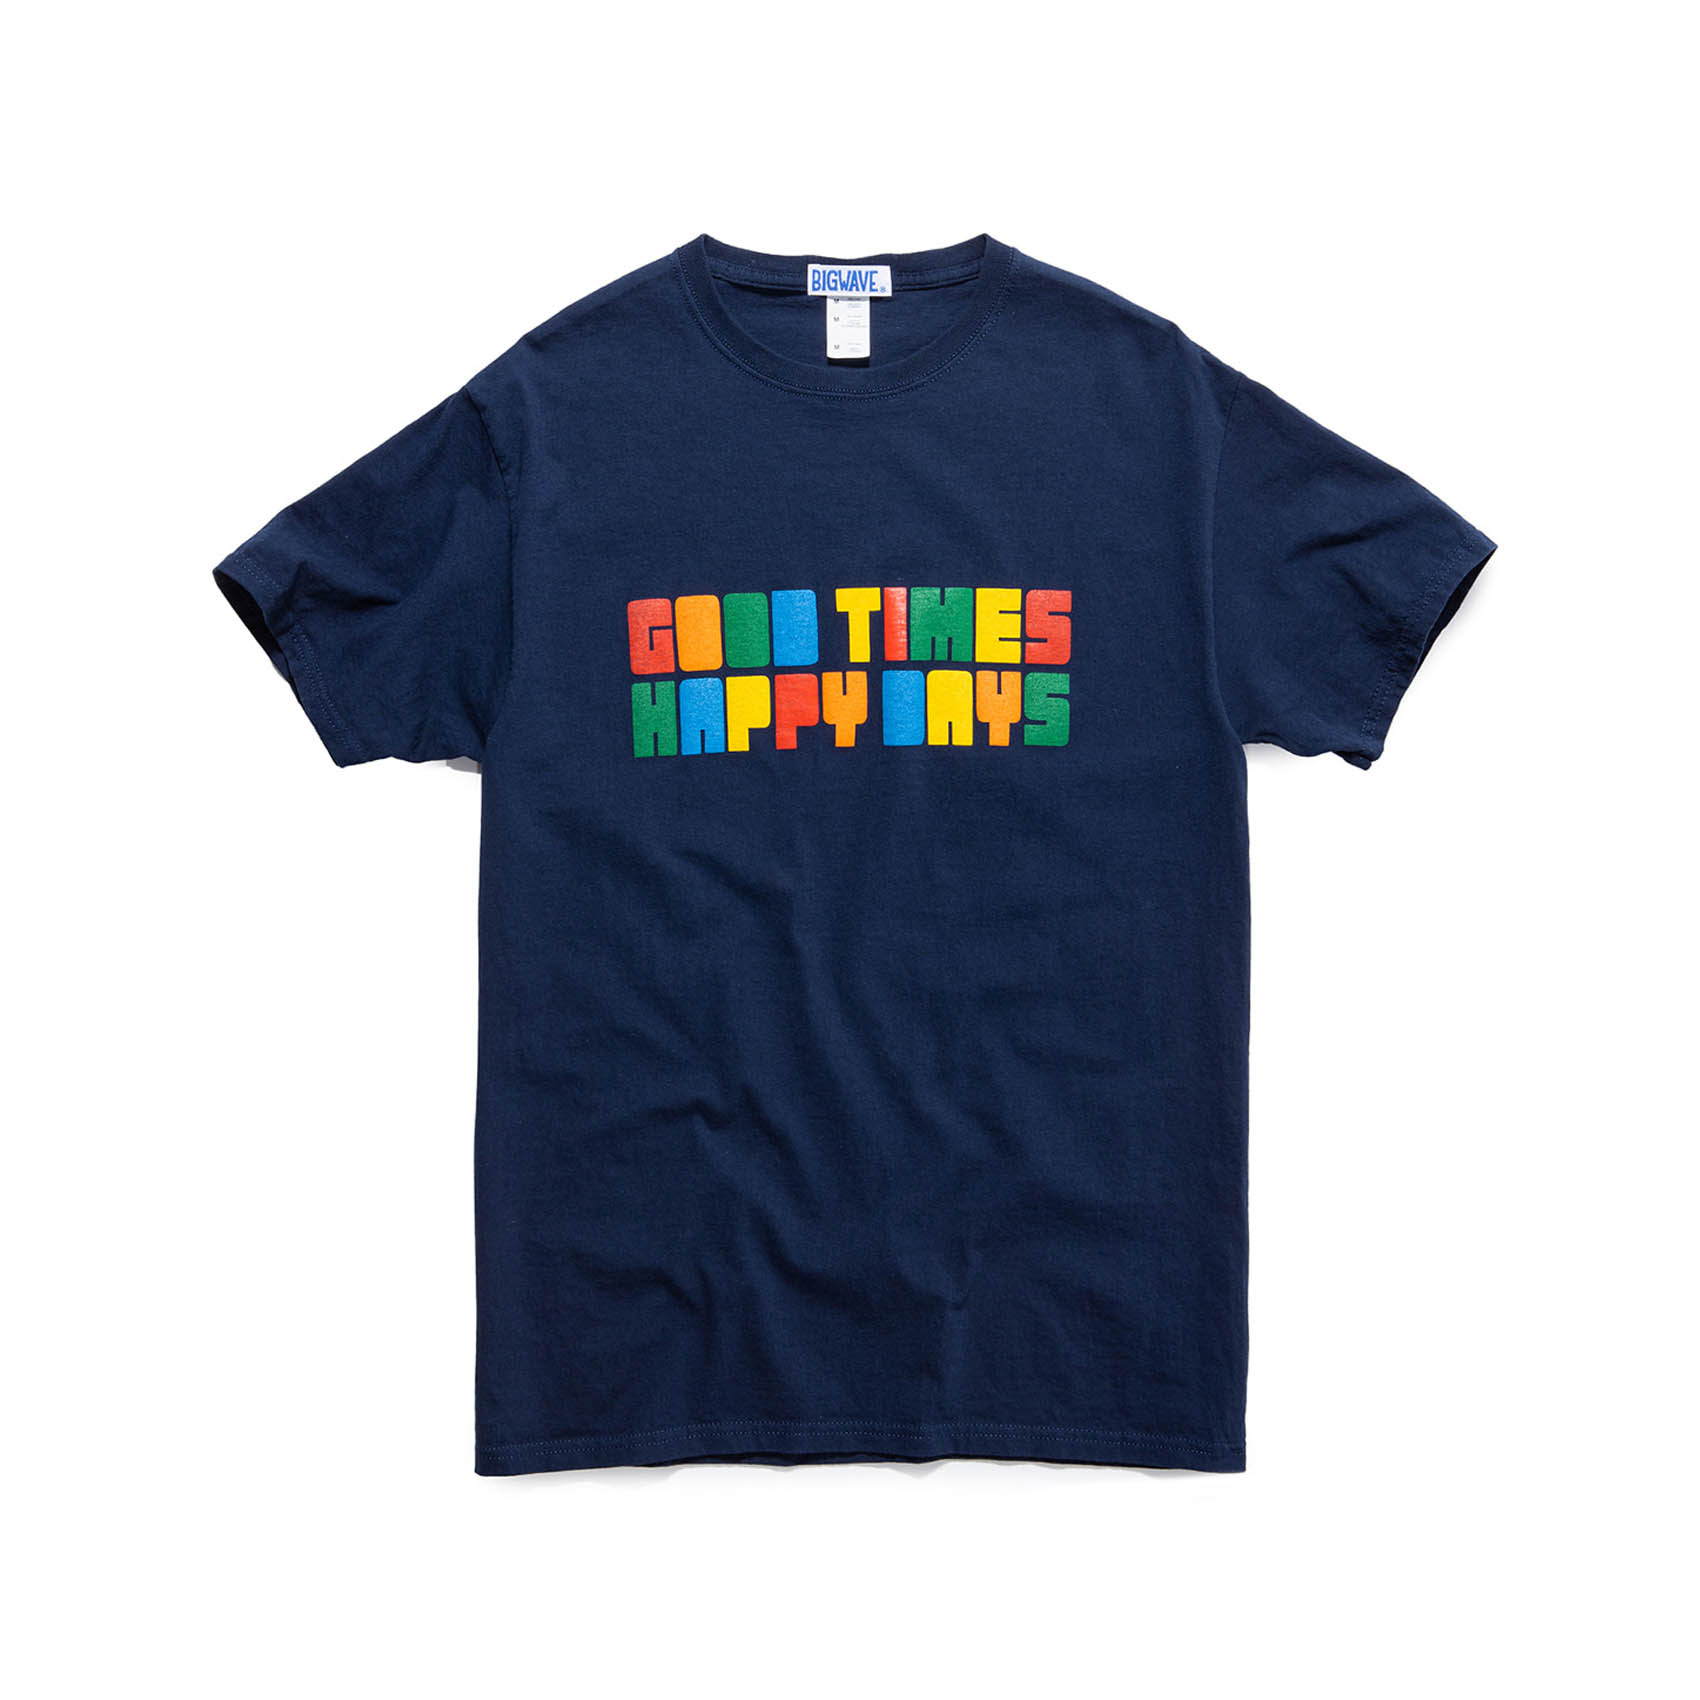 GOOD TIMES TEE - DARK NAVY